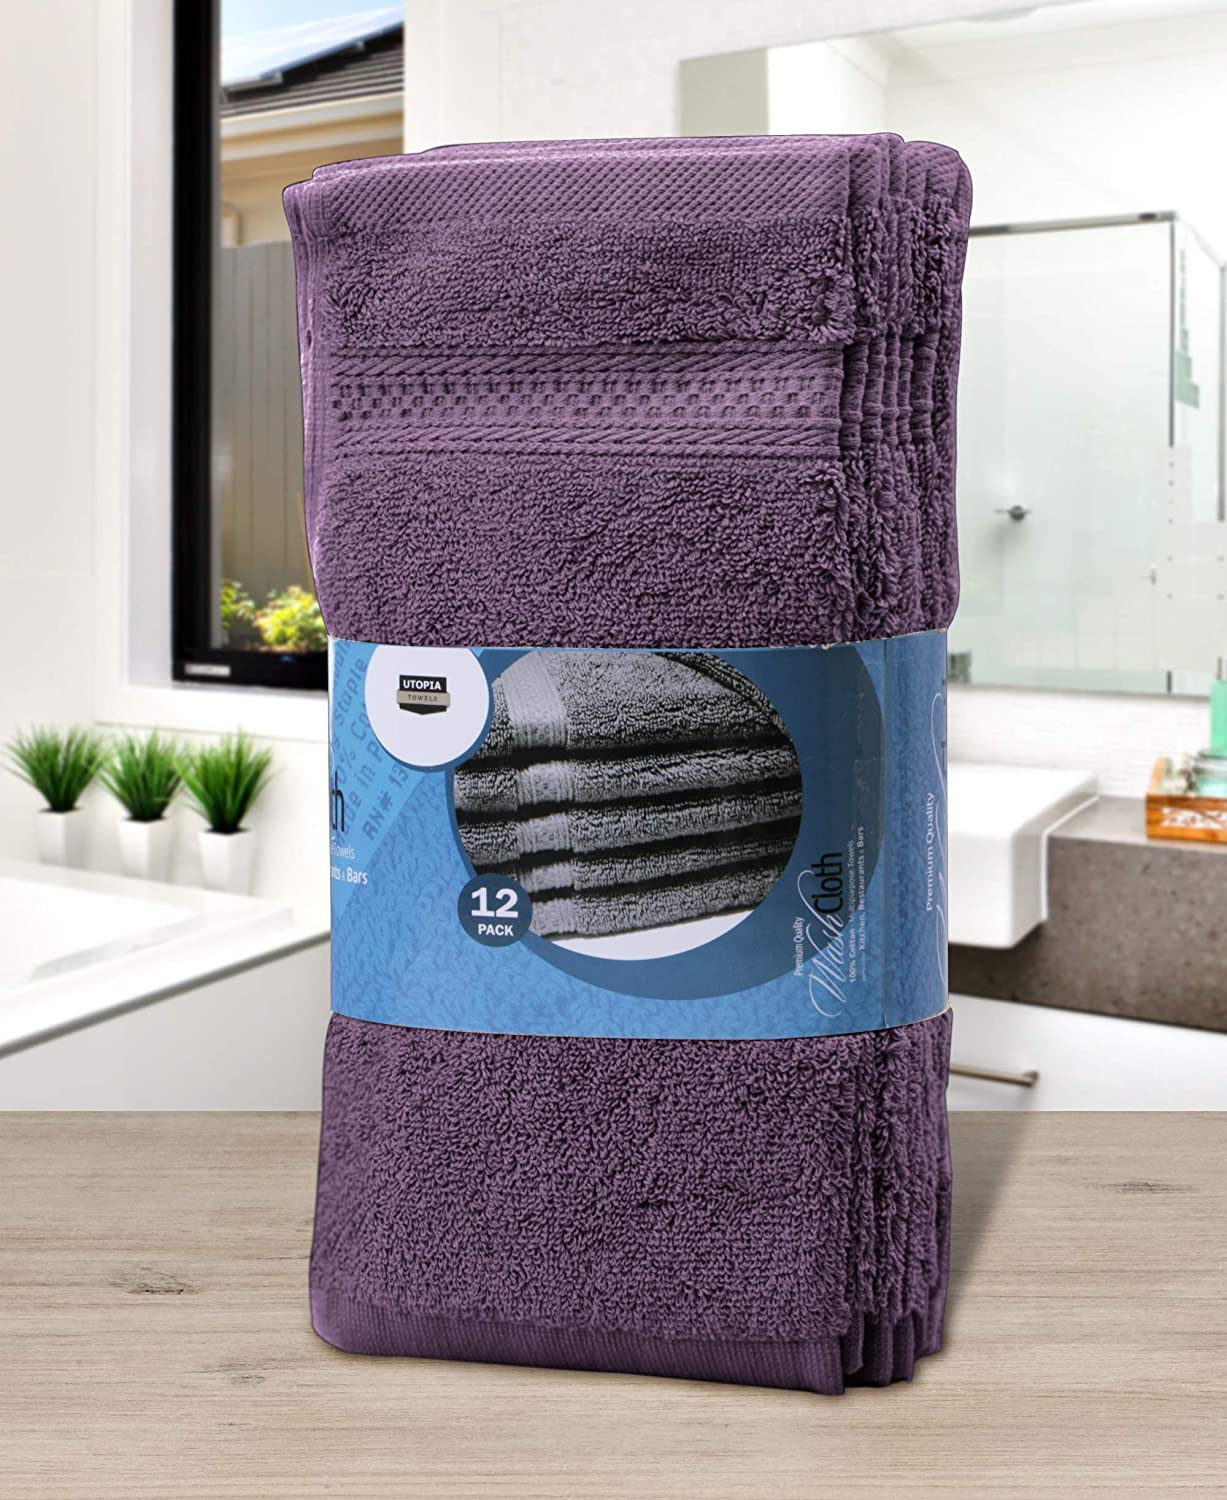 12 x 12 Inches Extra Soft Wash Cloths UT0467 White 12 Pack Utopia Towels Premium 700 GSM Cotton Washcloths